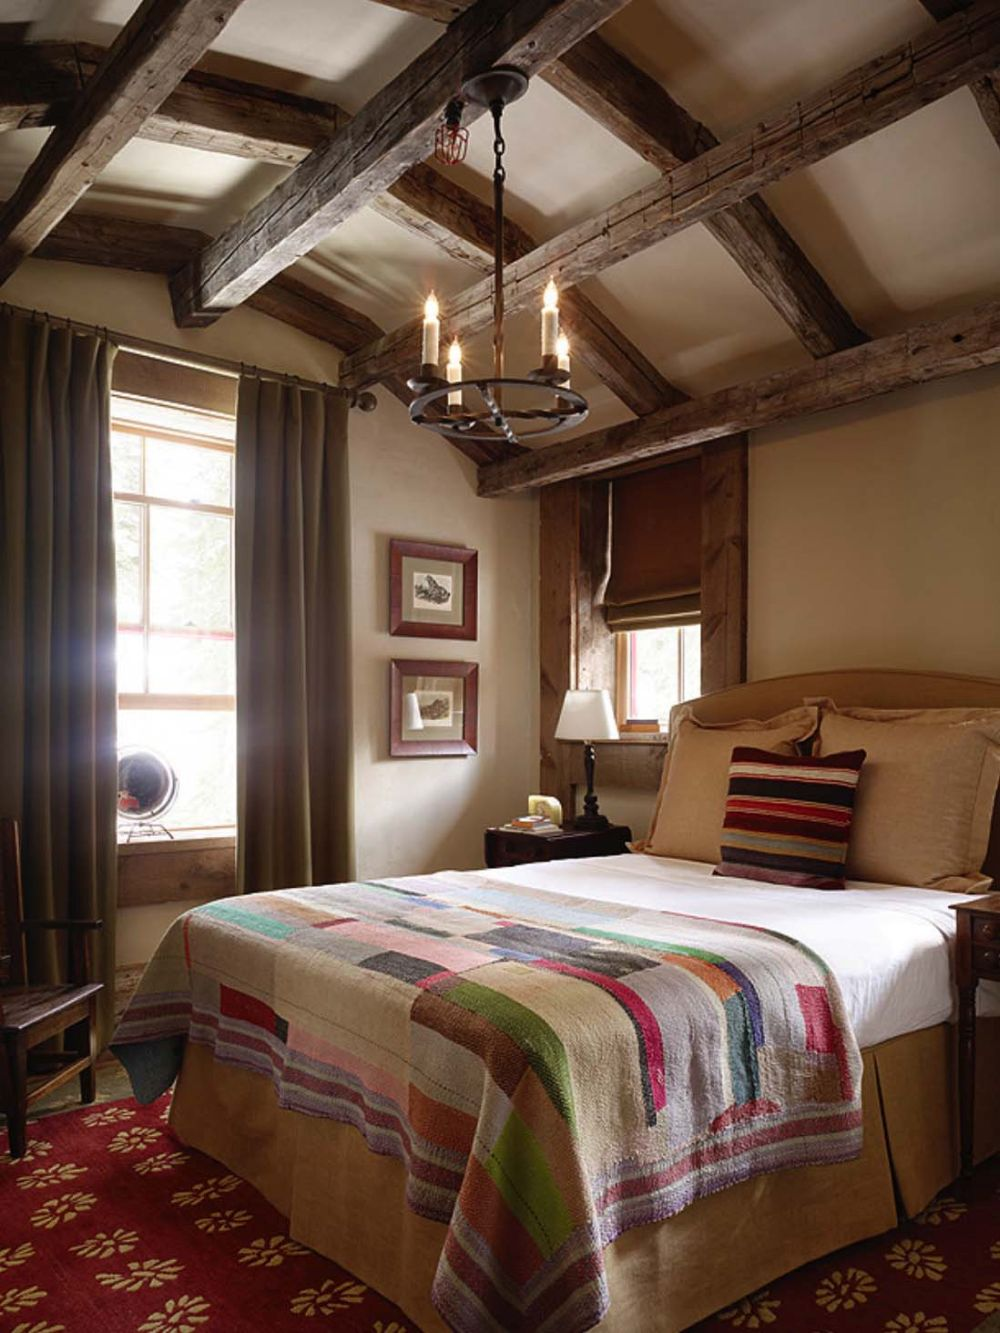 The ceiling beams and curved roofline give the bedroom a very cozy and comfortable look